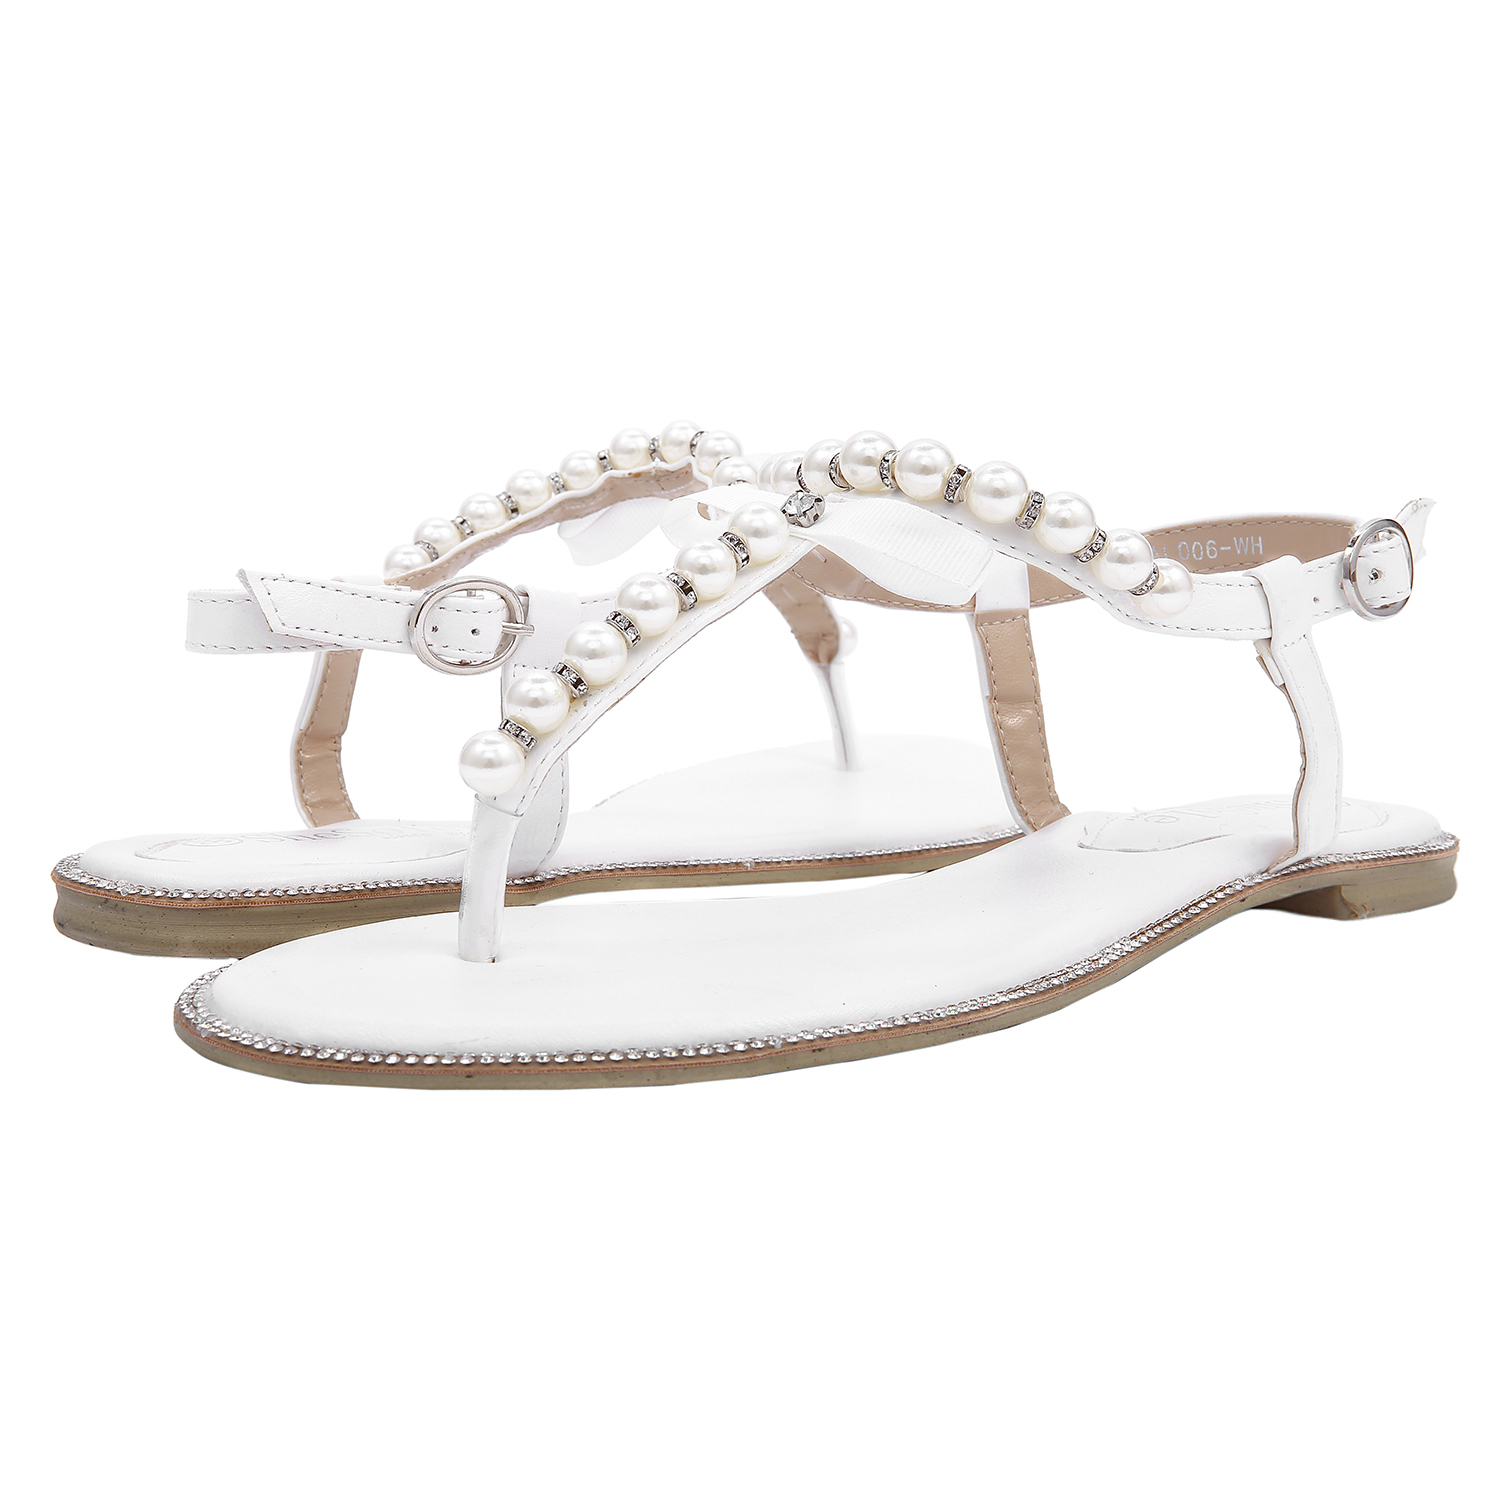 Shesole womens beach wedding shoes bridesmaid flat sandals size picture 13 of 24 junglespirit Gallery